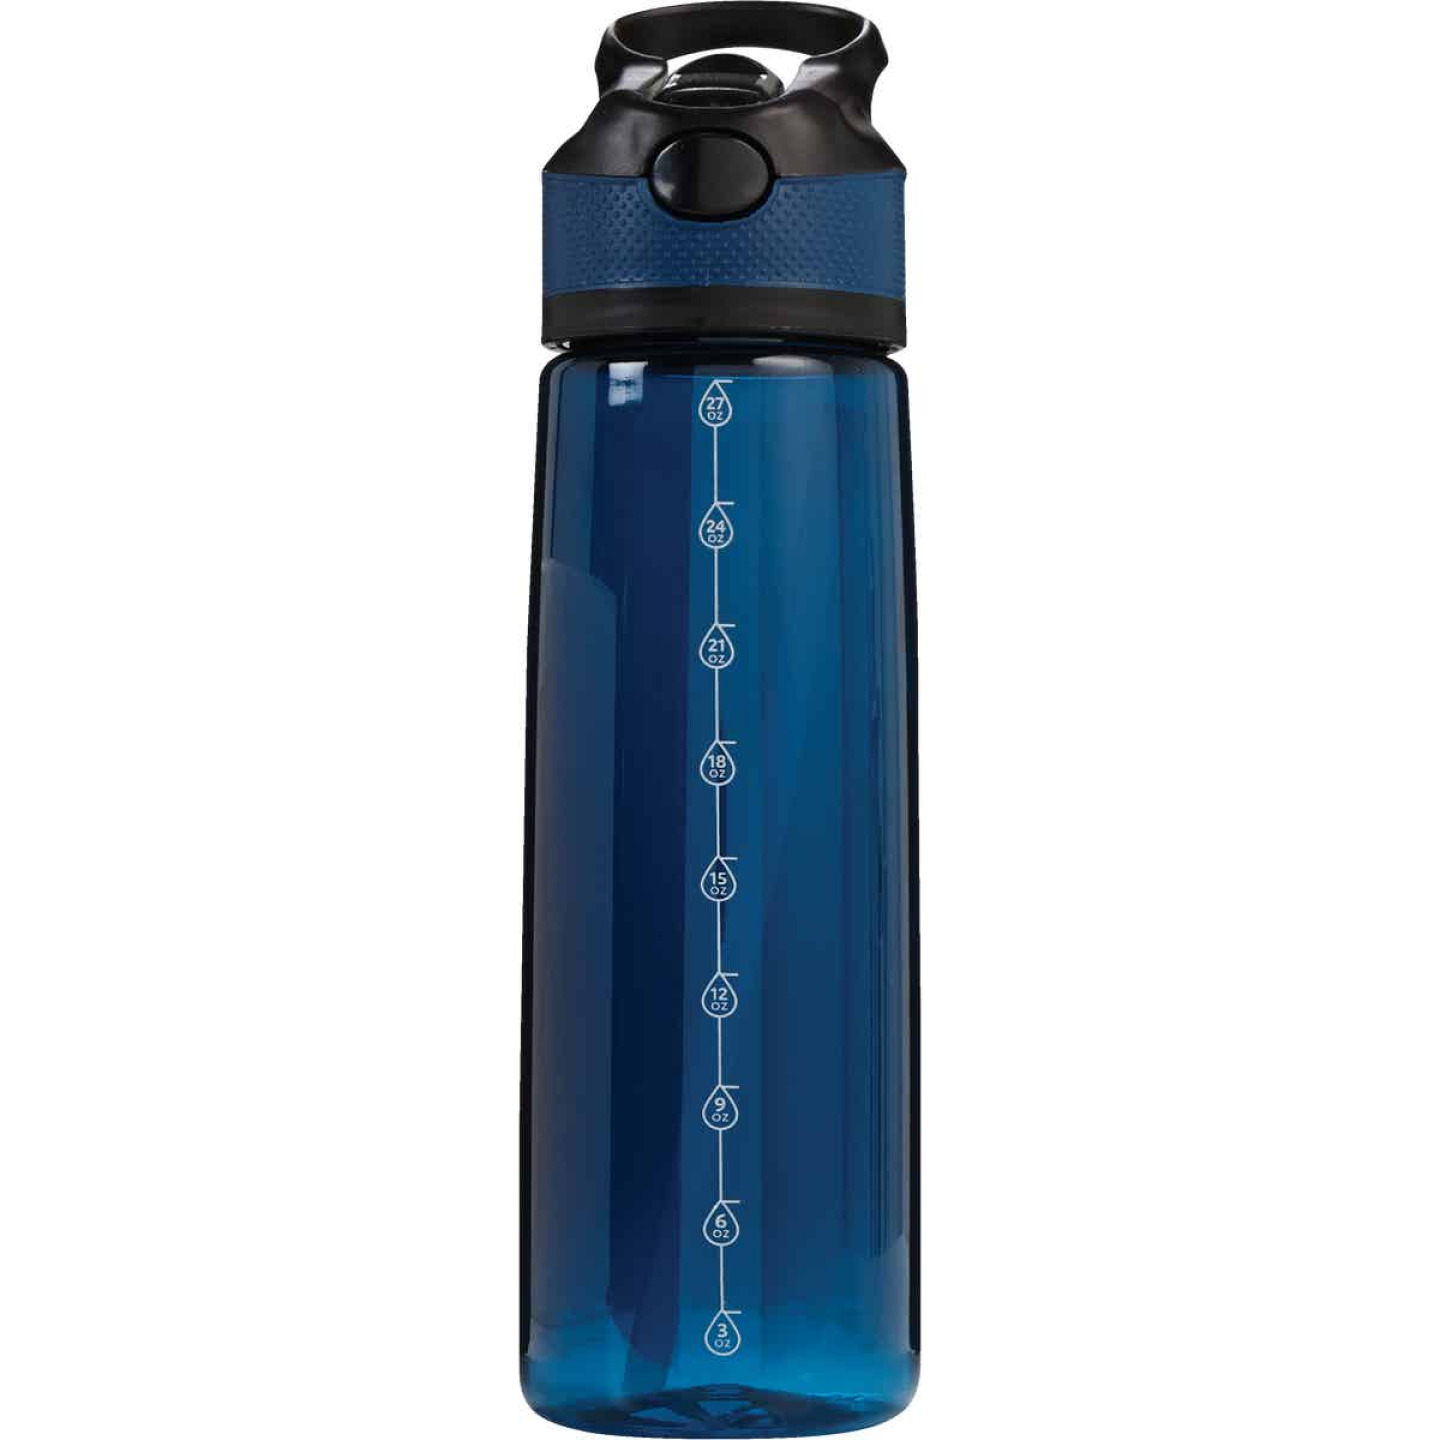 Manna 27 Oz. Navy Tritan Water Bottle Image 1